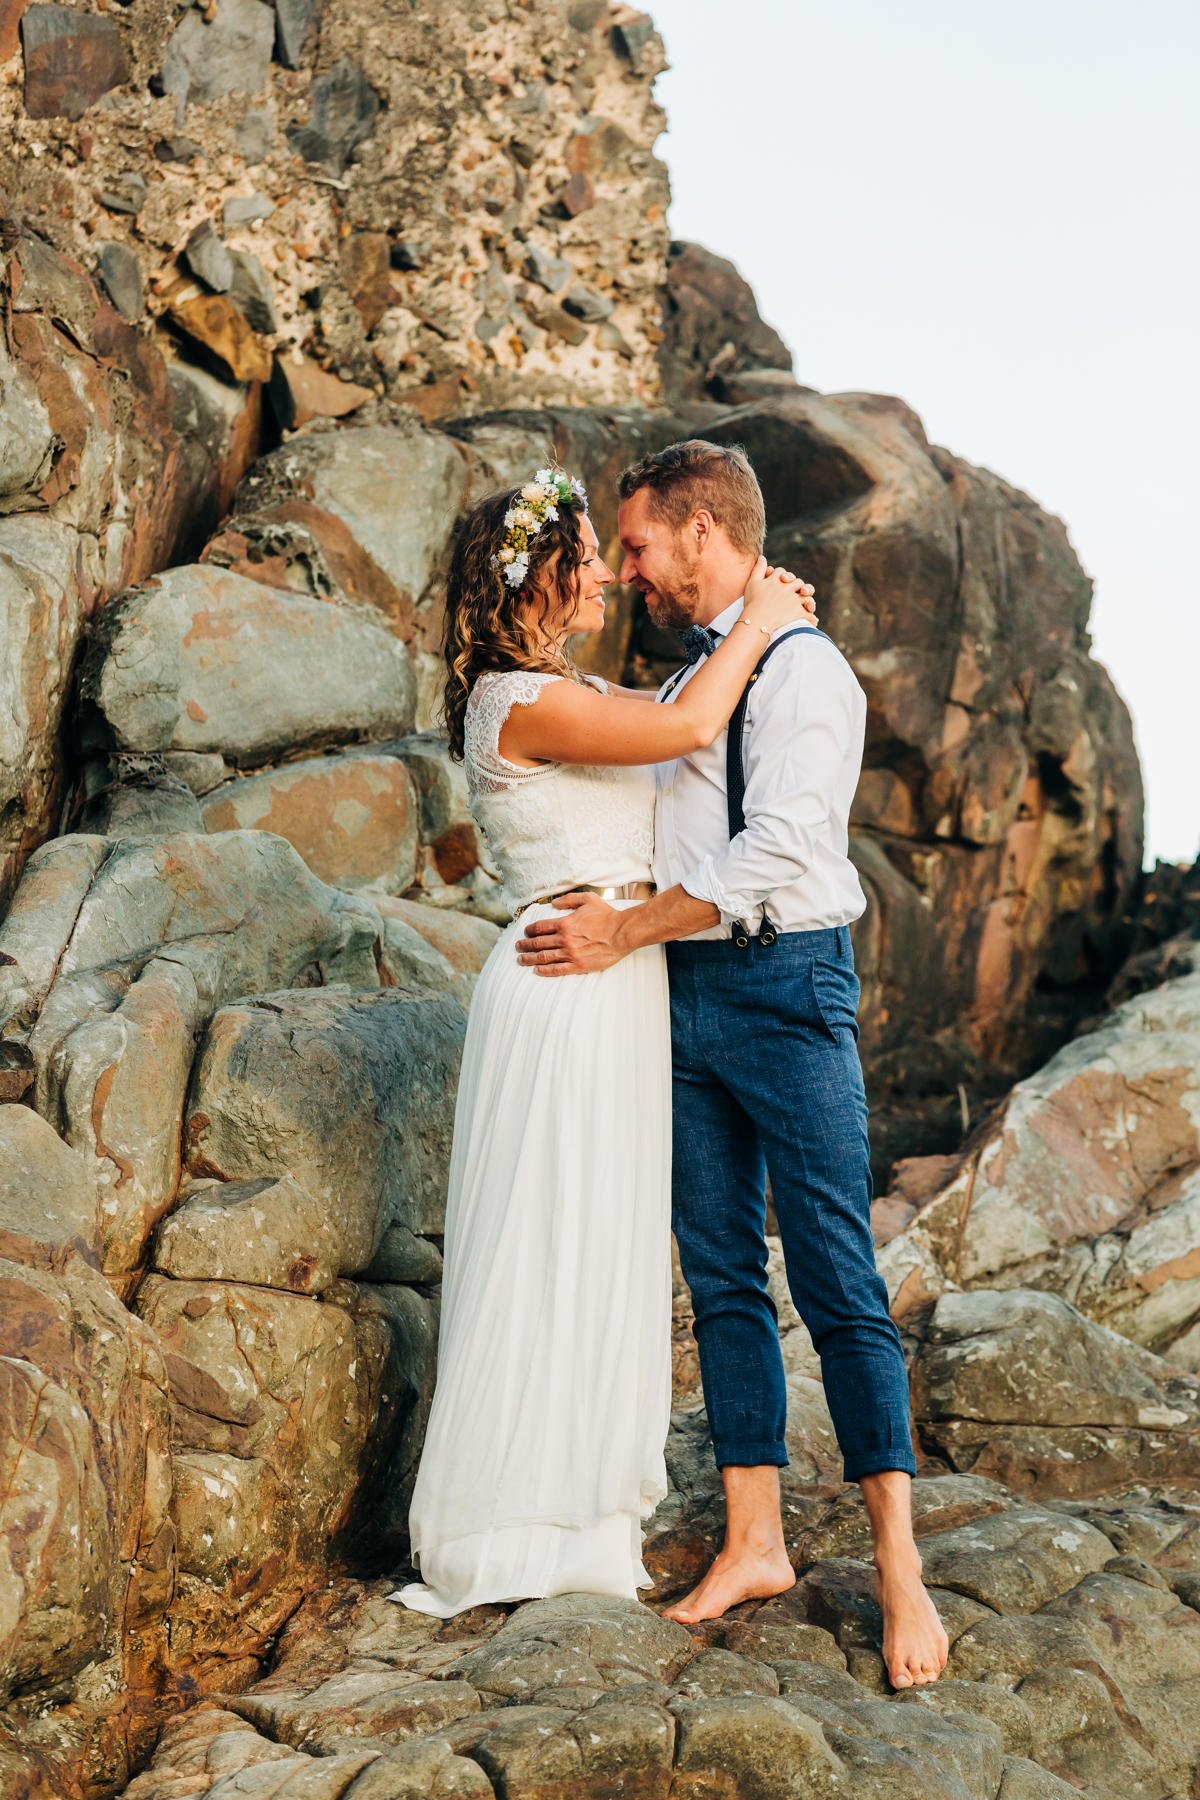 Sunshine-Beach-Wedding-Photographers-Lindy-Yewen 207.jpg